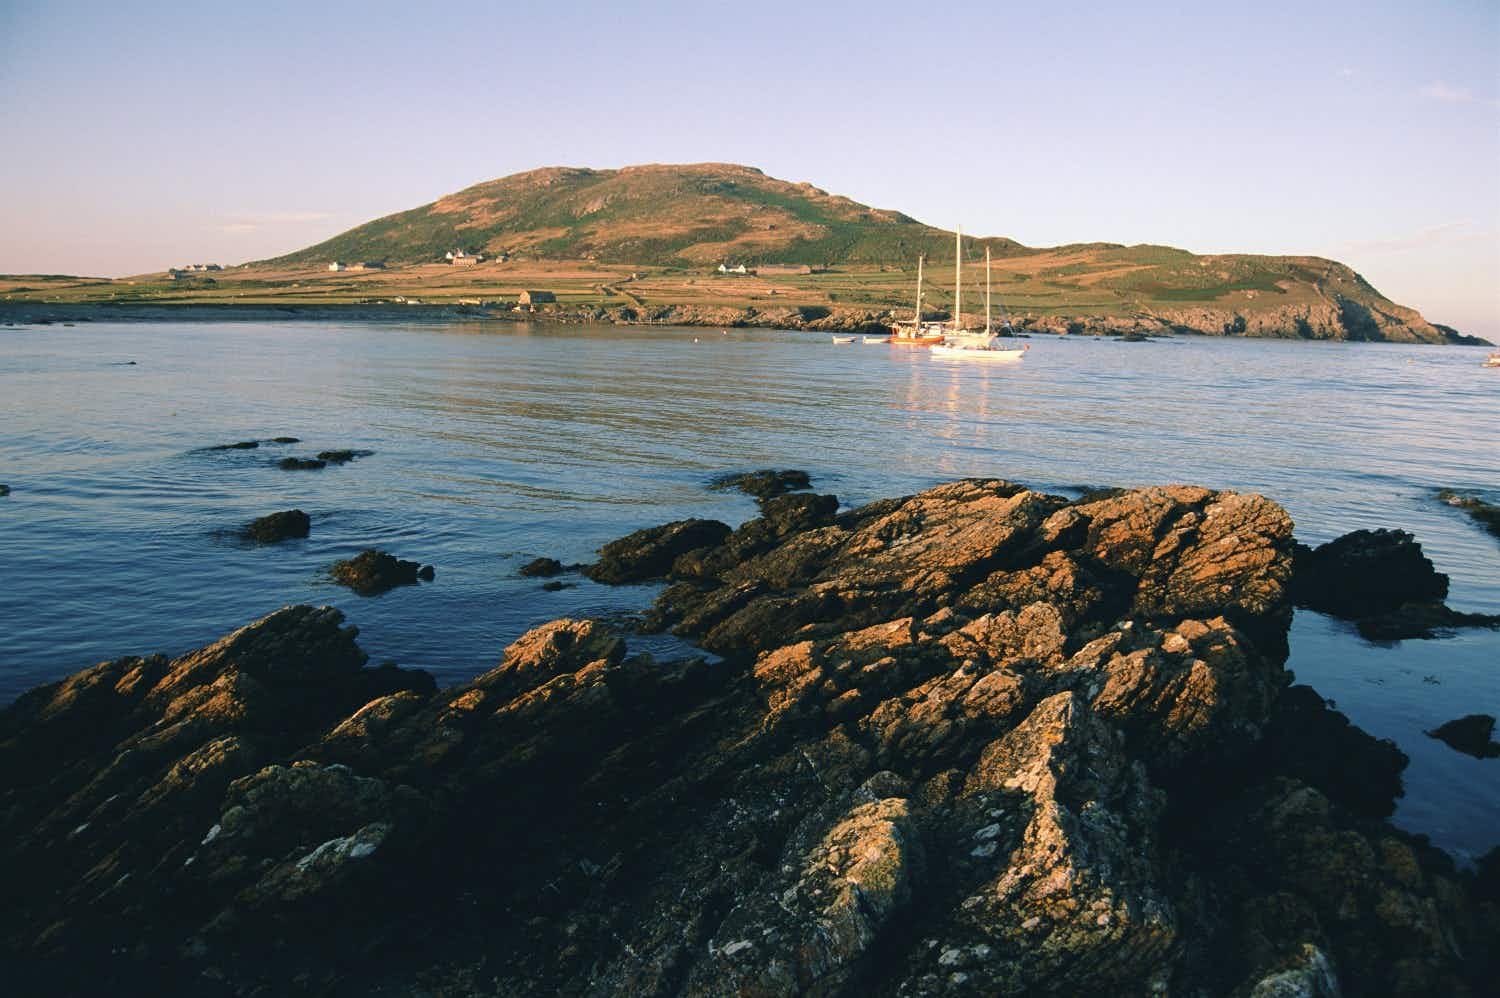 This dream job could see you and your partner working on a secluded Welsh island